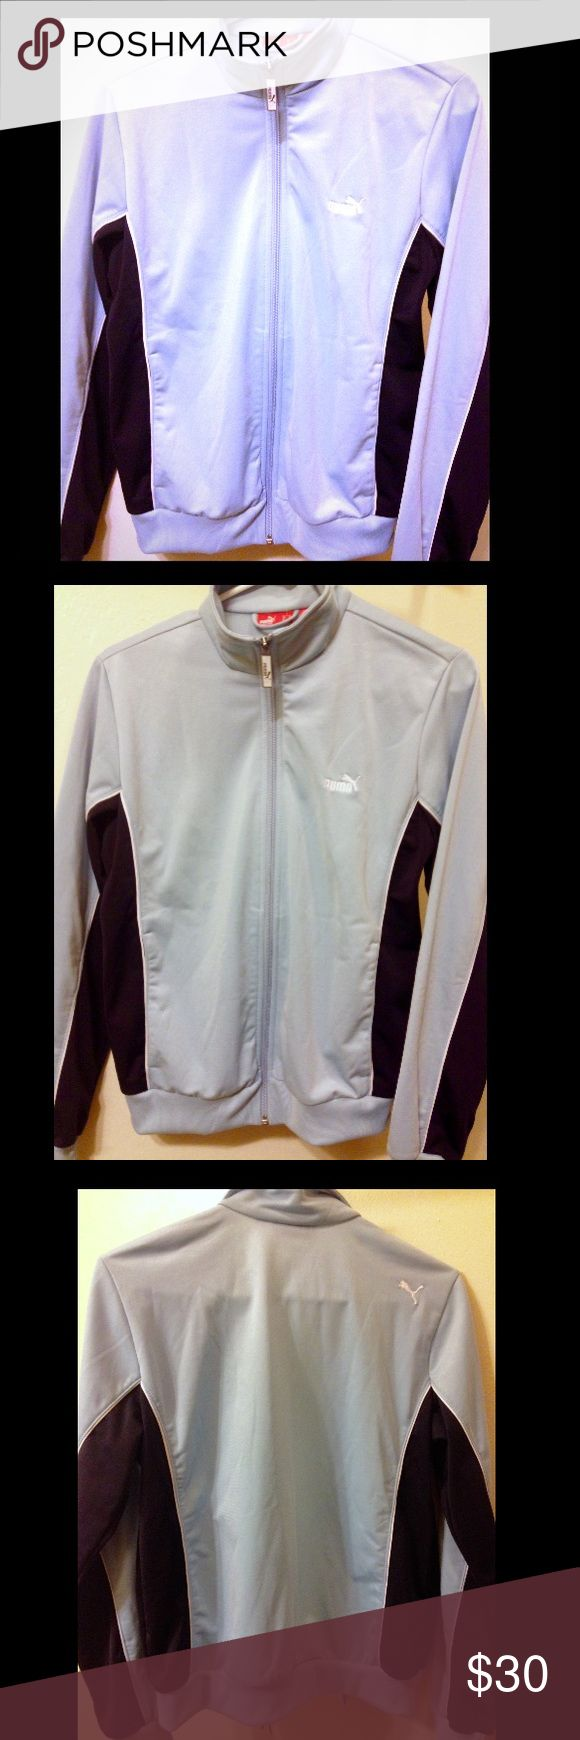 Puma Athletic Jacket, Light Blue/Dark Blue, Size M Puma Women's Athletic Zip Up Jacket Light Blue/Dark Blue, Size M. Front Pockets. Perfect Condition. Awesome Jacket! Puma Jackets & Coats